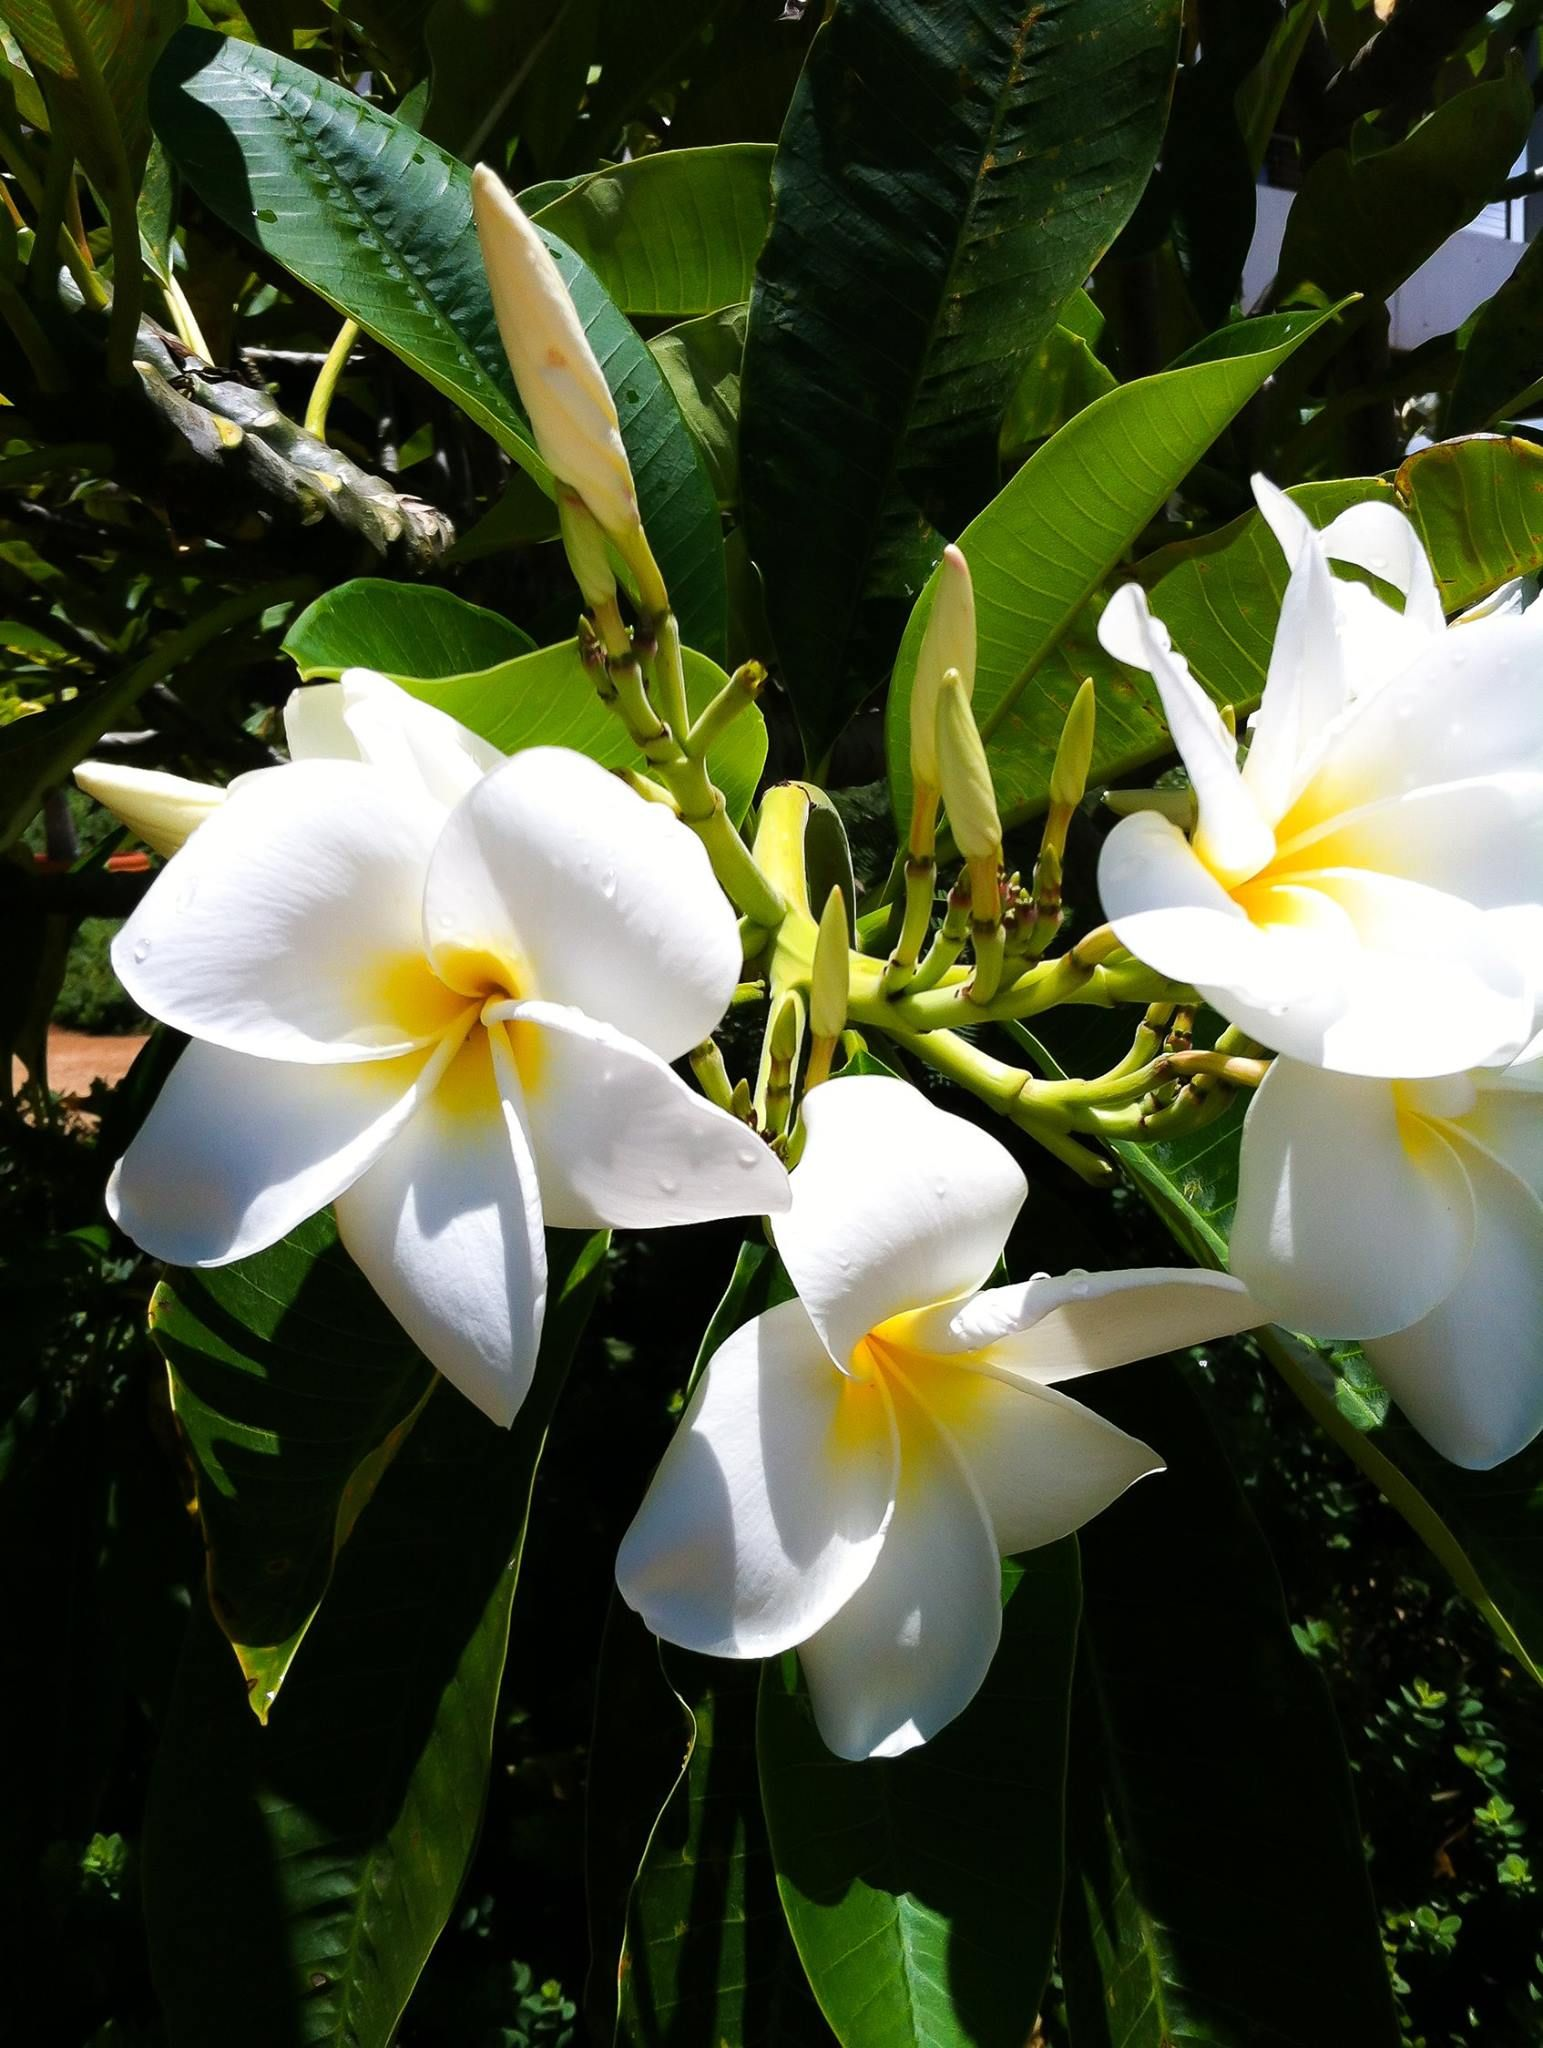 Plumeria hawaii my favorite smelling flowers pinterest explore hawaiian flowers and more izmirmasajfo